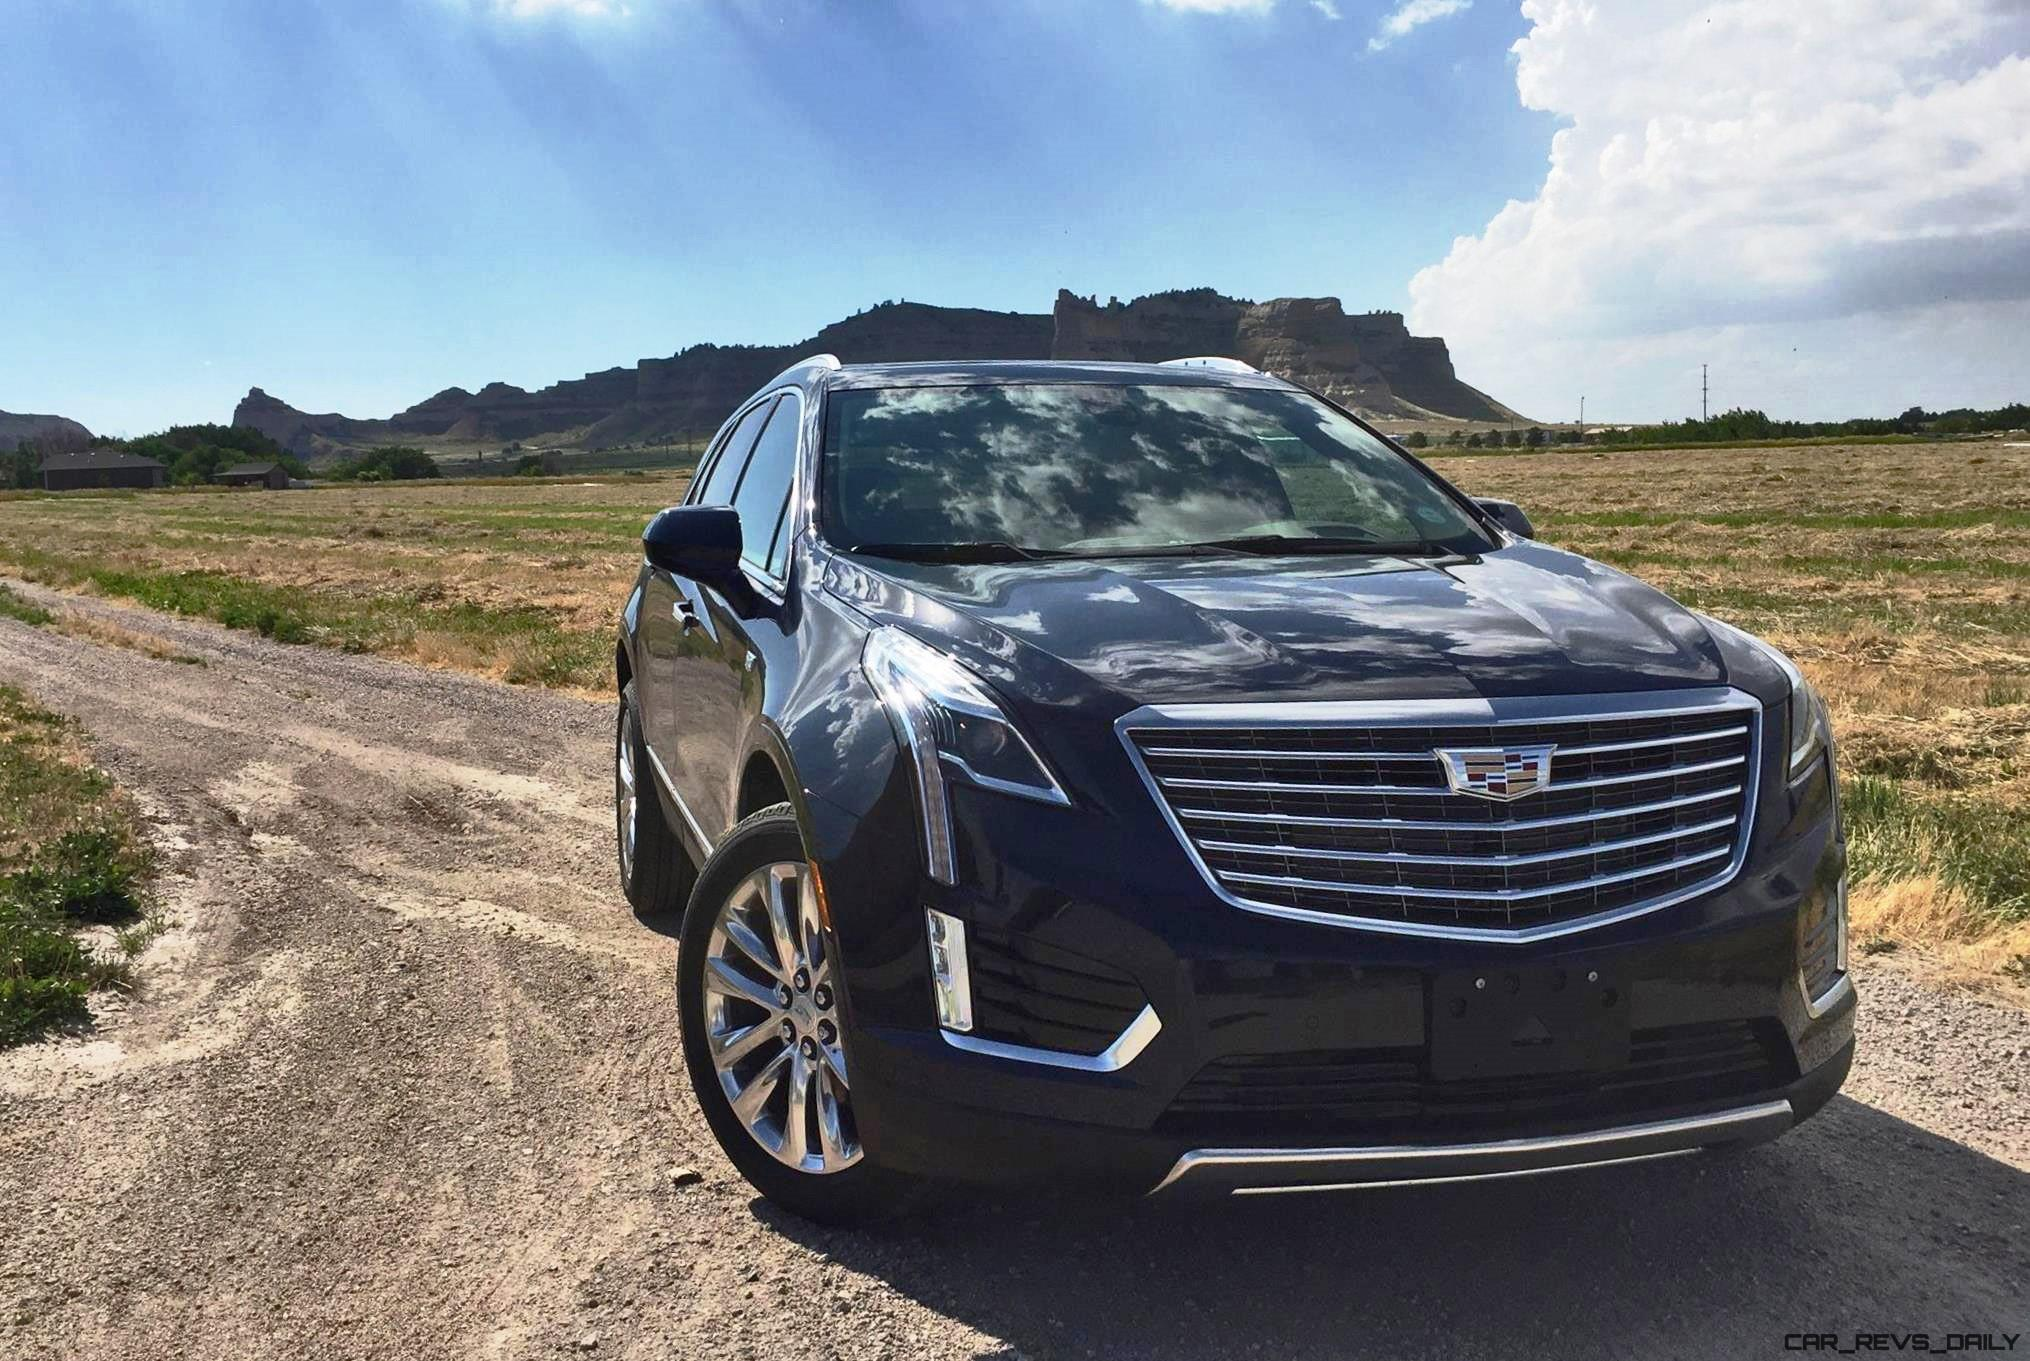 2017 cadillac xt5 platinum road test review by tim esterdahl. Black Bedroom Furniture Sets. Home Design Ideas